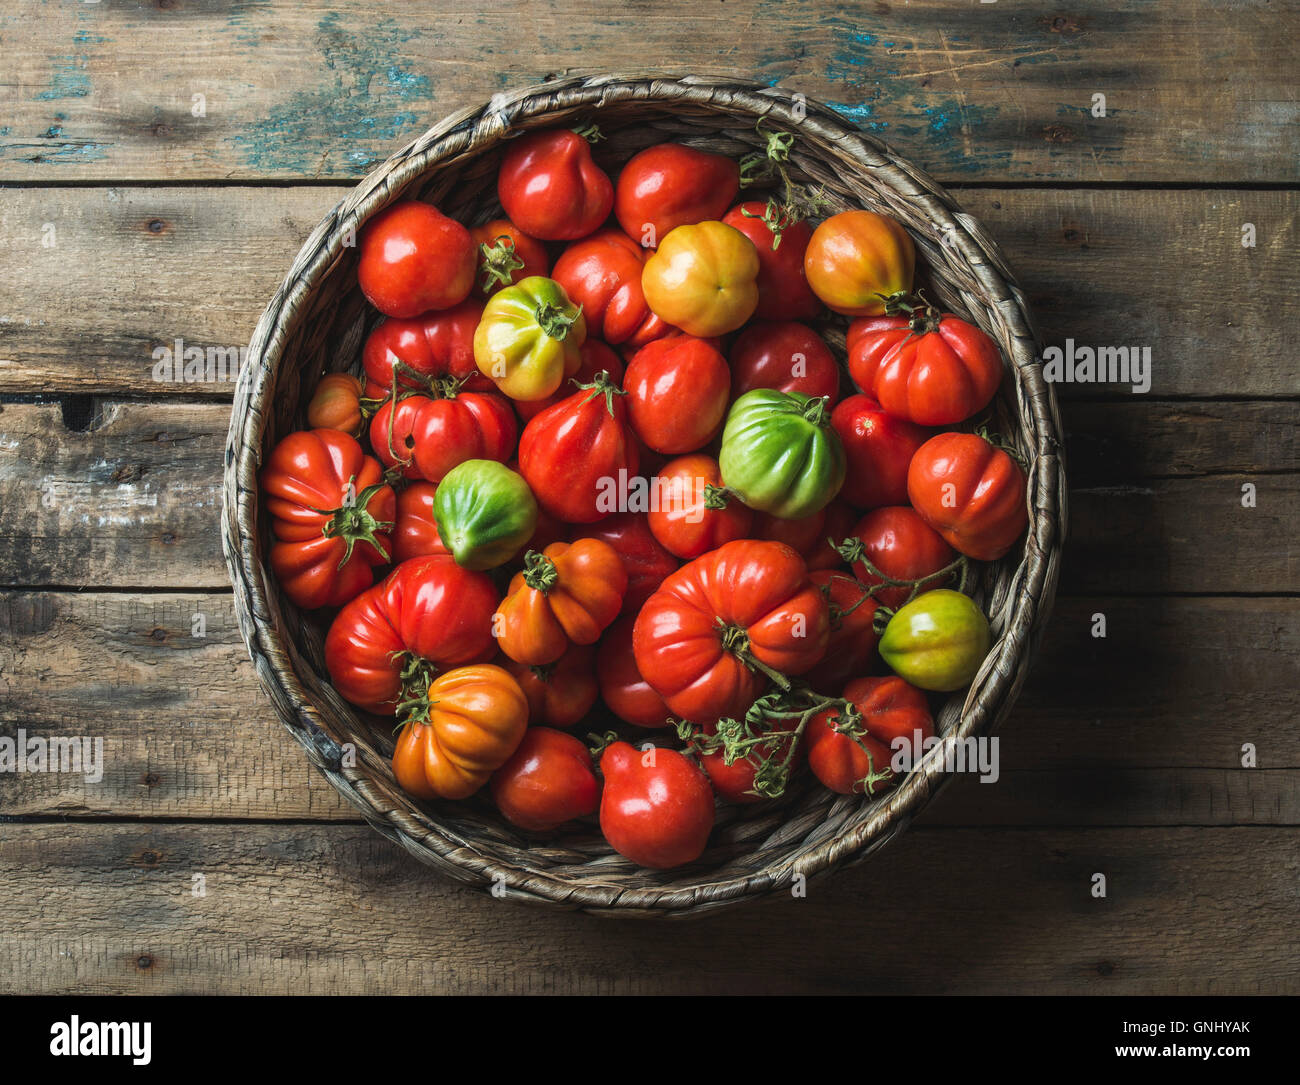 Fresh colorful ripe Fall heirloom tomatoes in basket over wooden background, top view, horizontal composition - Stock Image